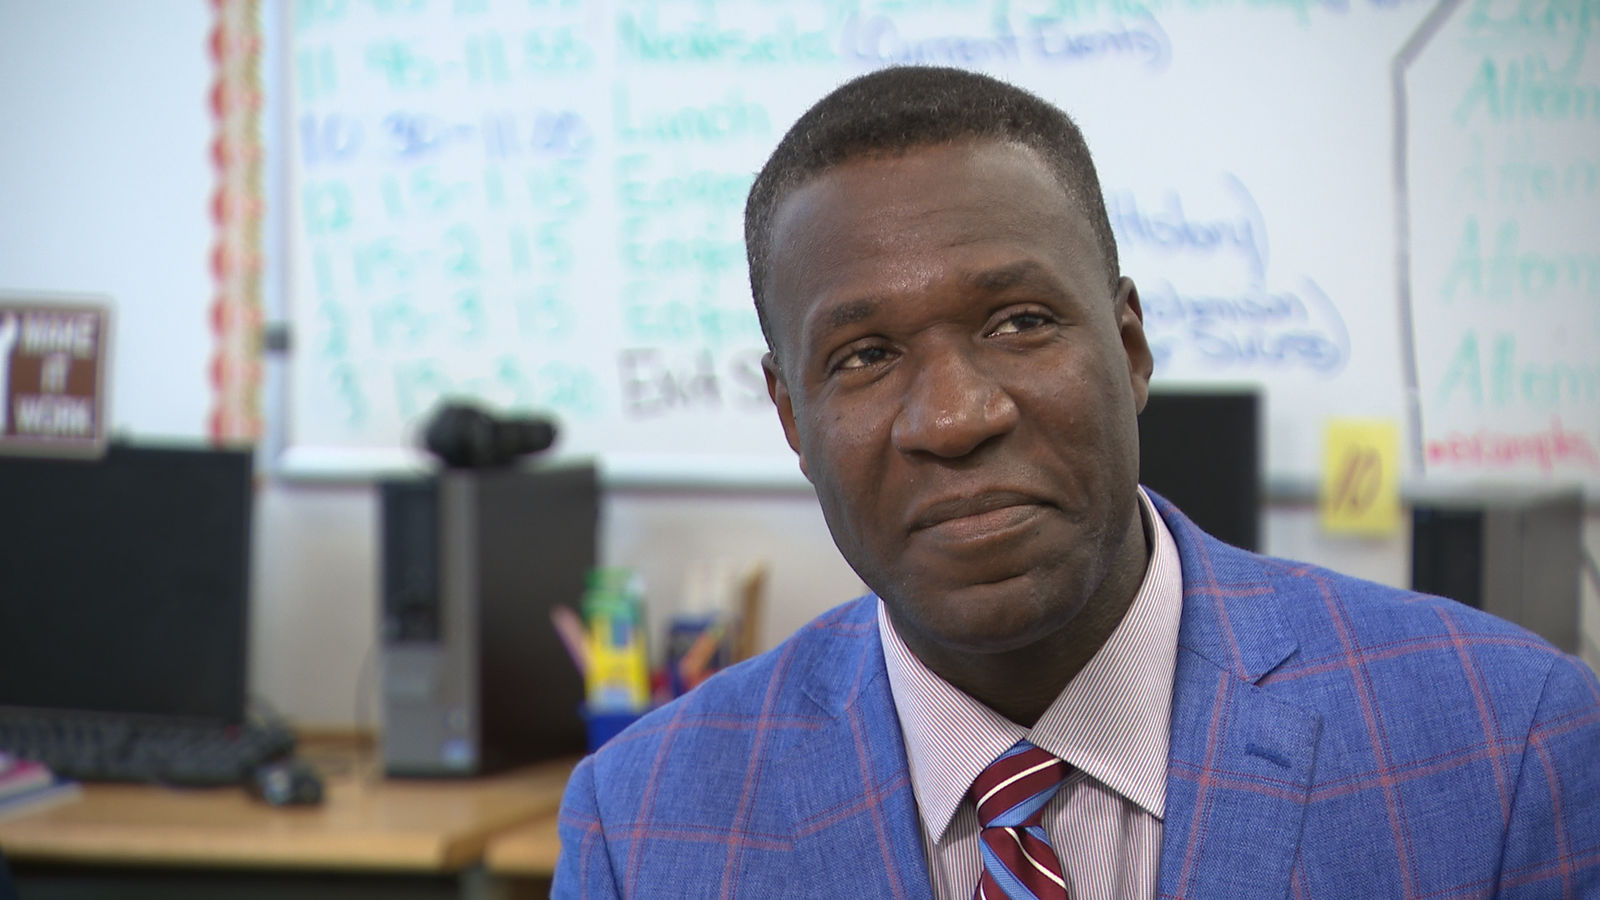 Dr. Art McCoy, Superintendent of the Jennings School District, talks about his trauma-informed approach to education (Photo: Alex Brauer, Sinclair Broadcast Group)